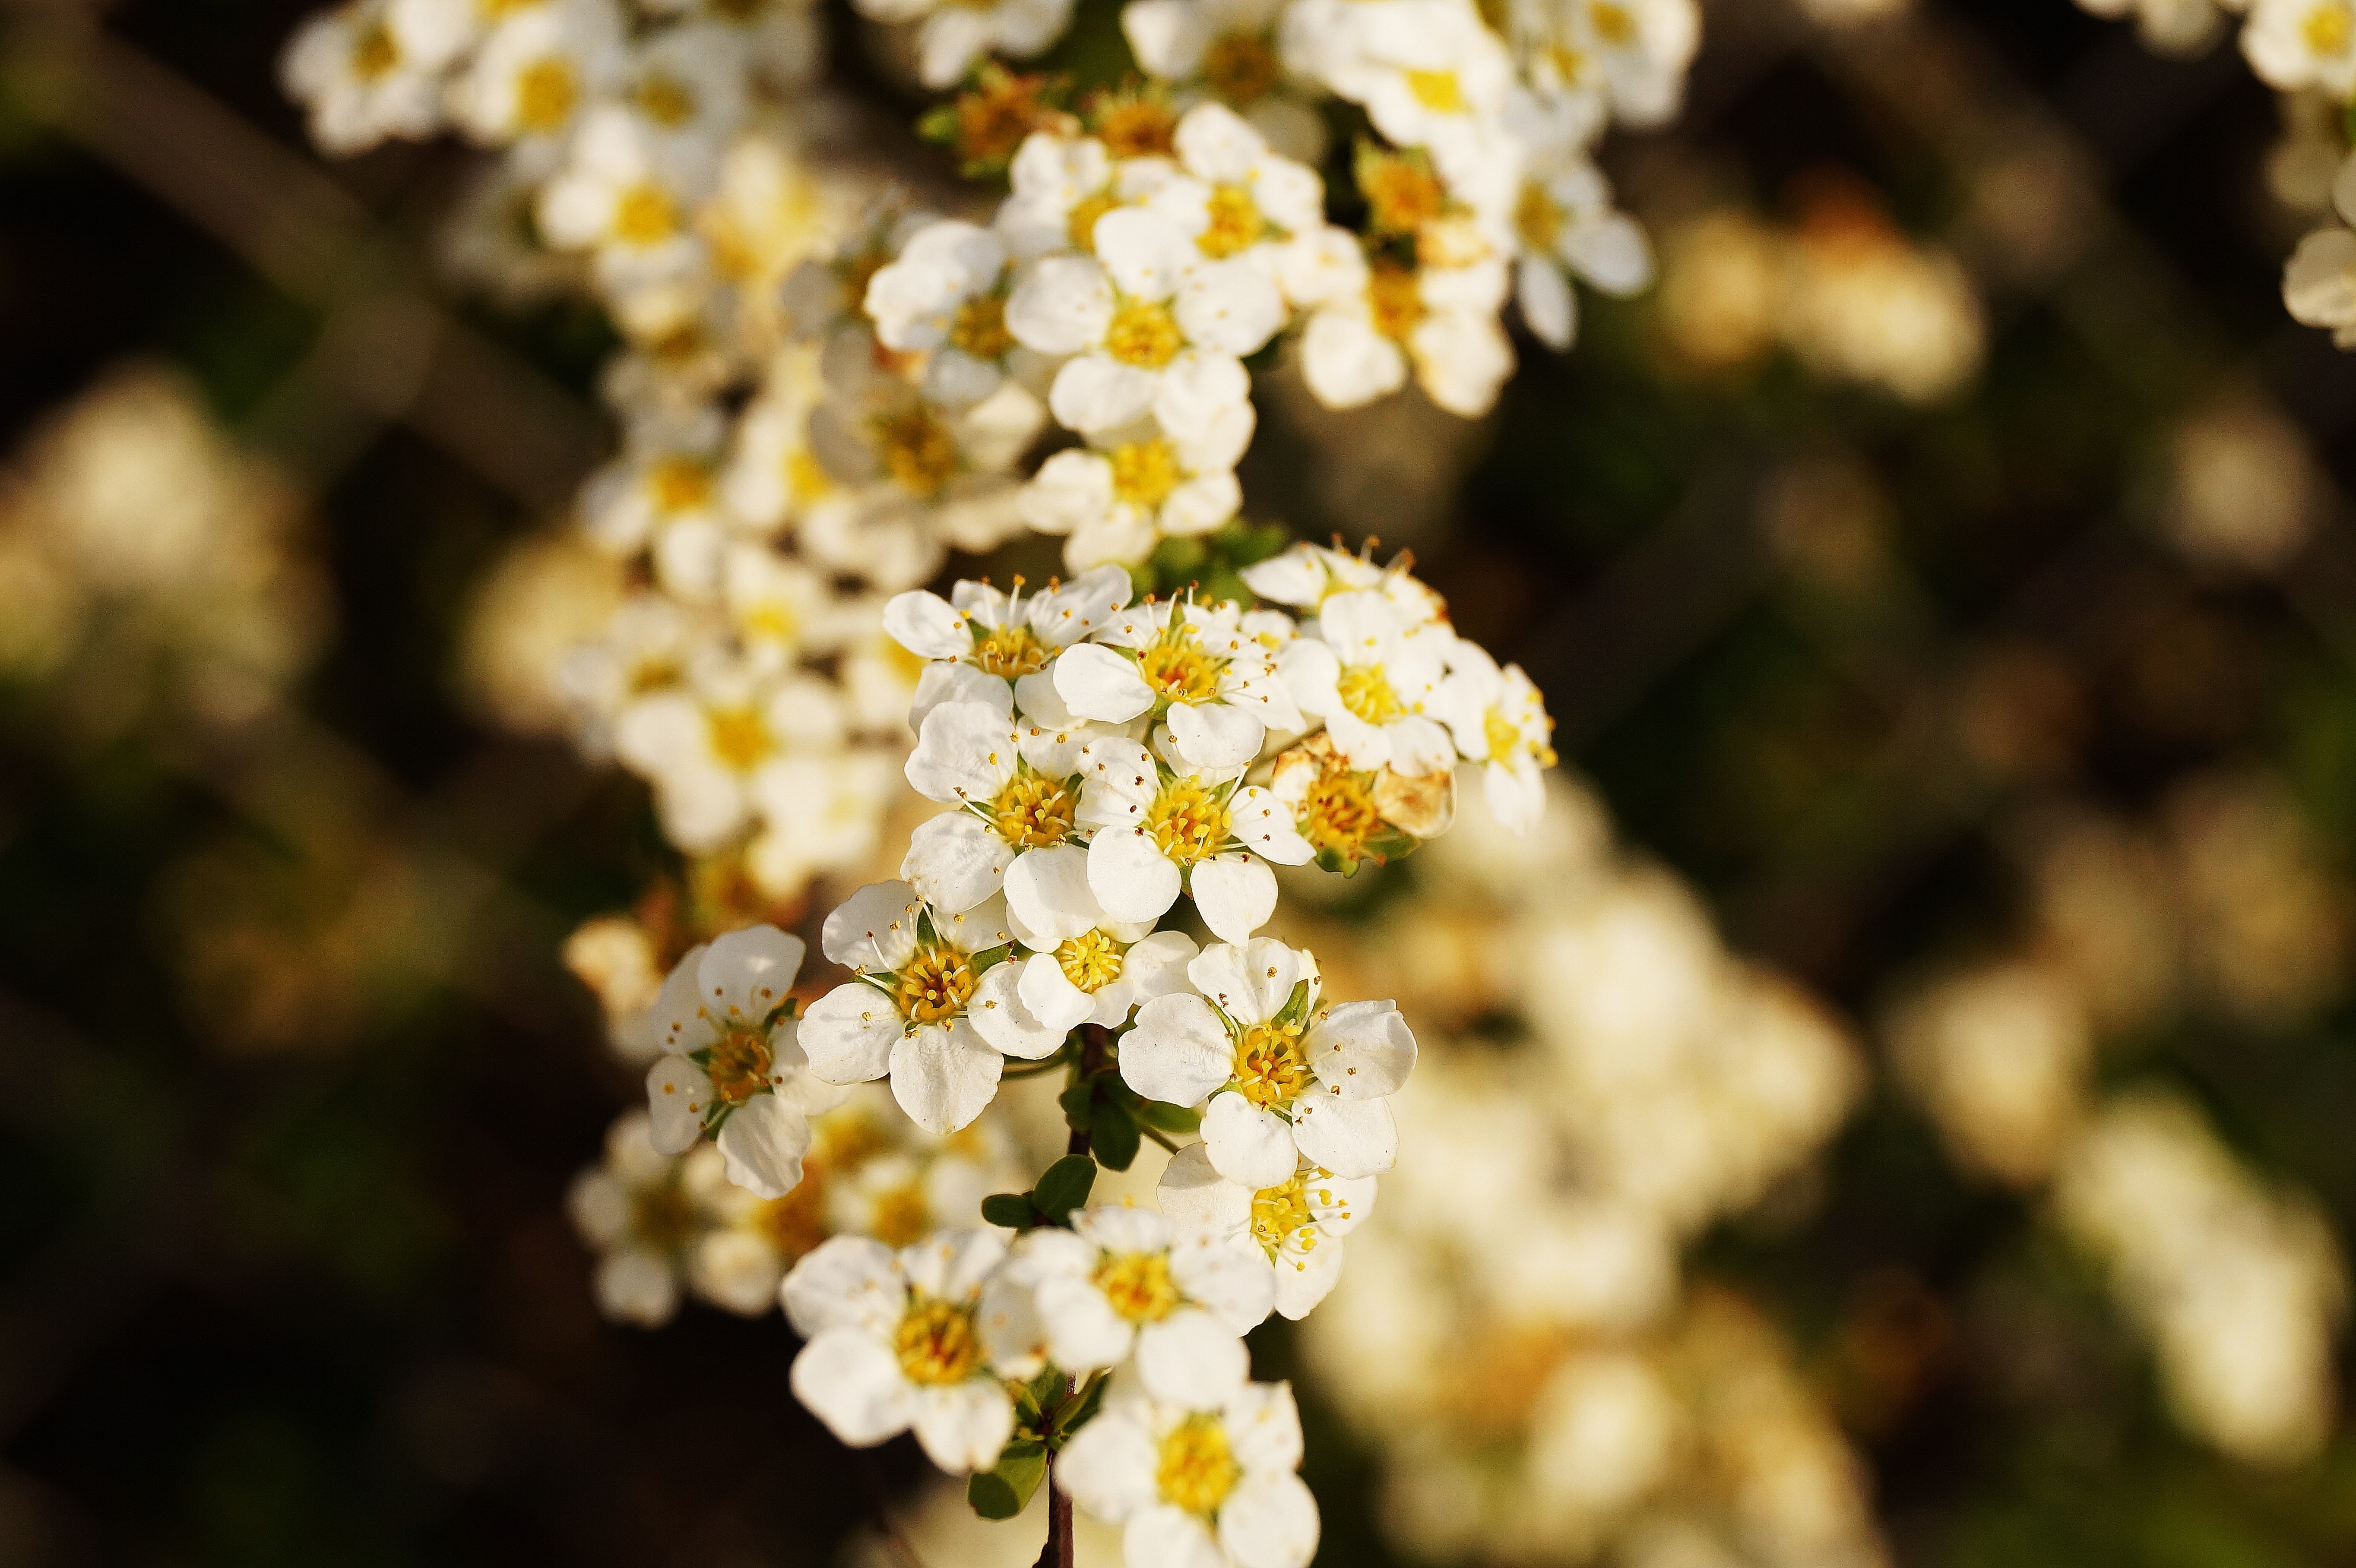 White and yellow petaled flower photo